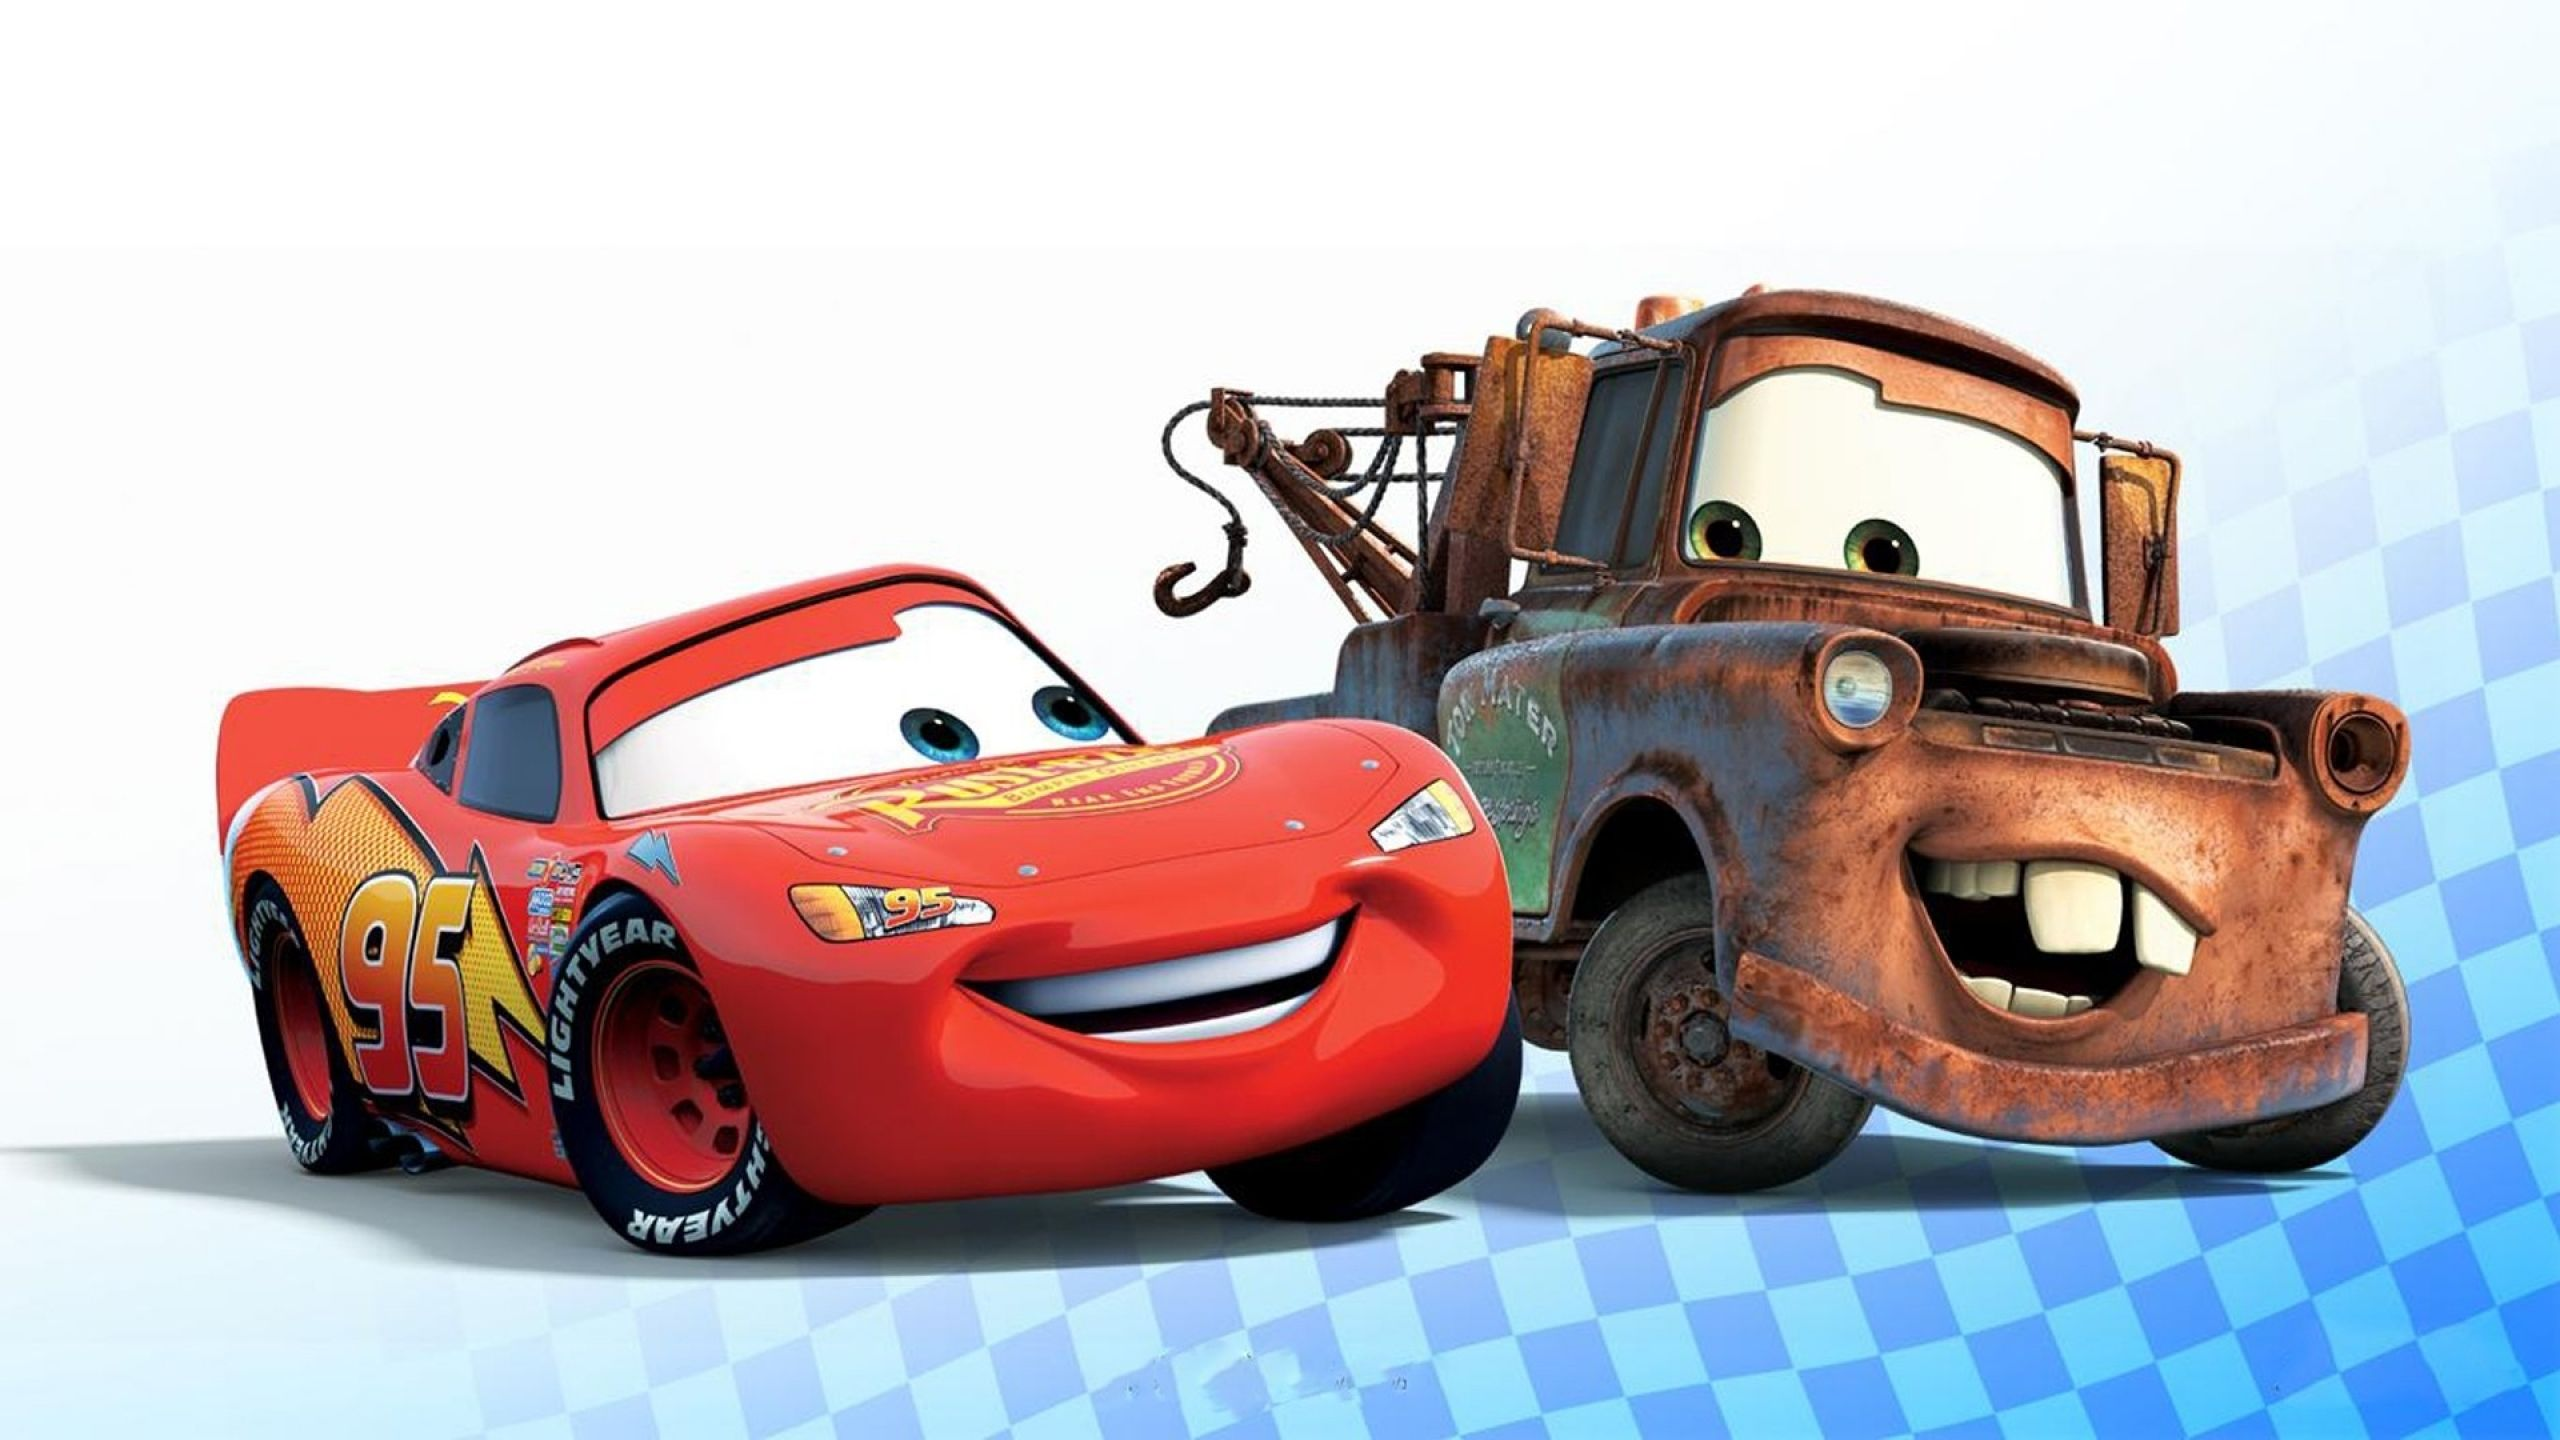 Pixar Movies Cars Mater Lightning Mcqueen Disney 1920x1080 Wallpaper Art Hd Wallpaper Disney Cars Wallpaper Cars Movie Pixar Cars